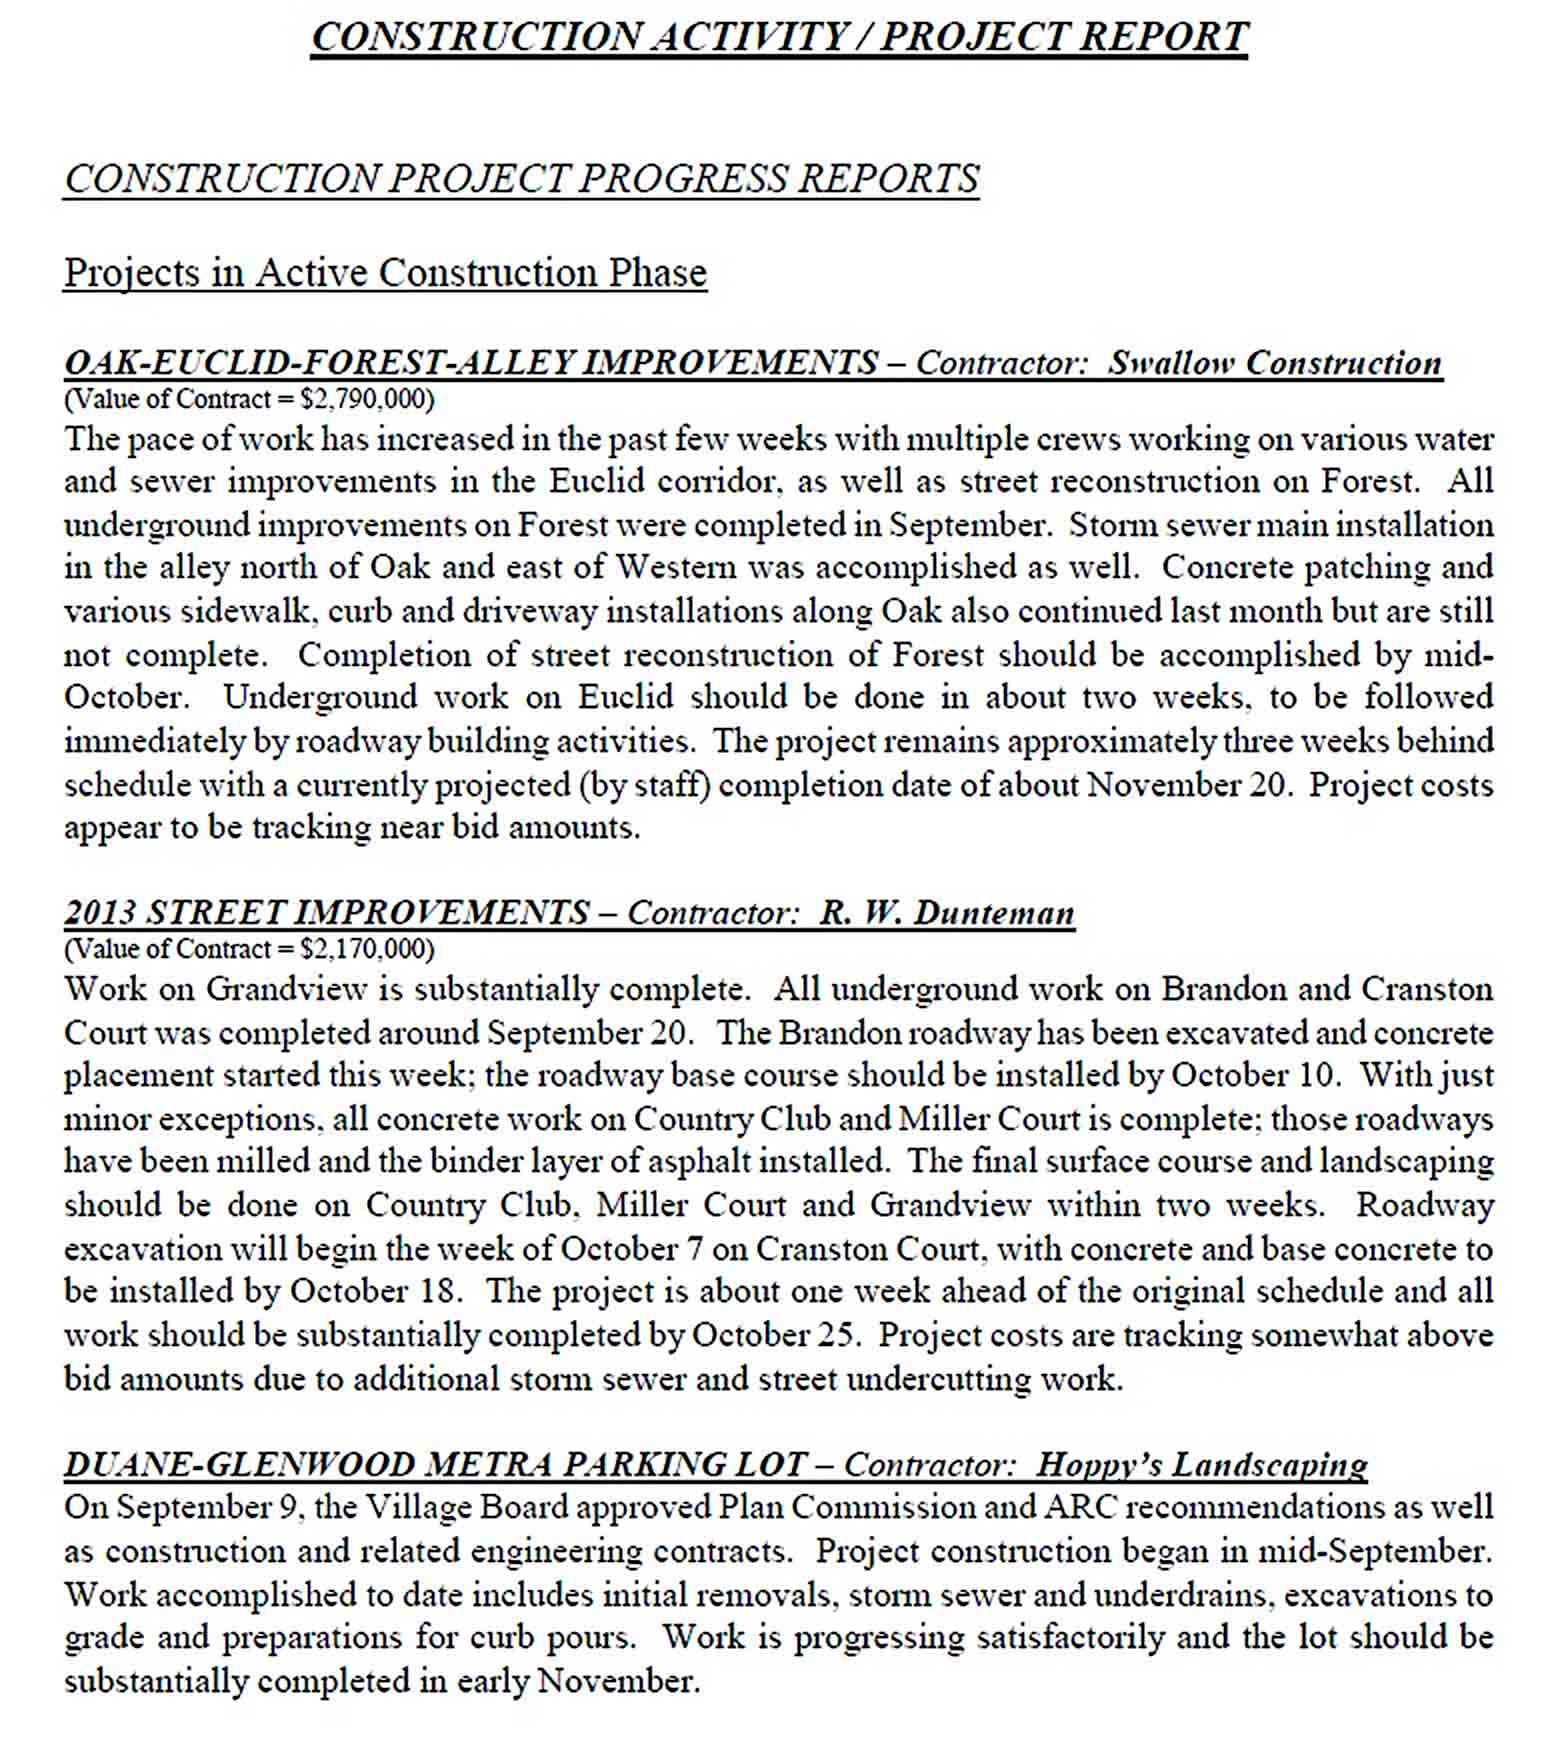 Templates Construction Activity Project Report